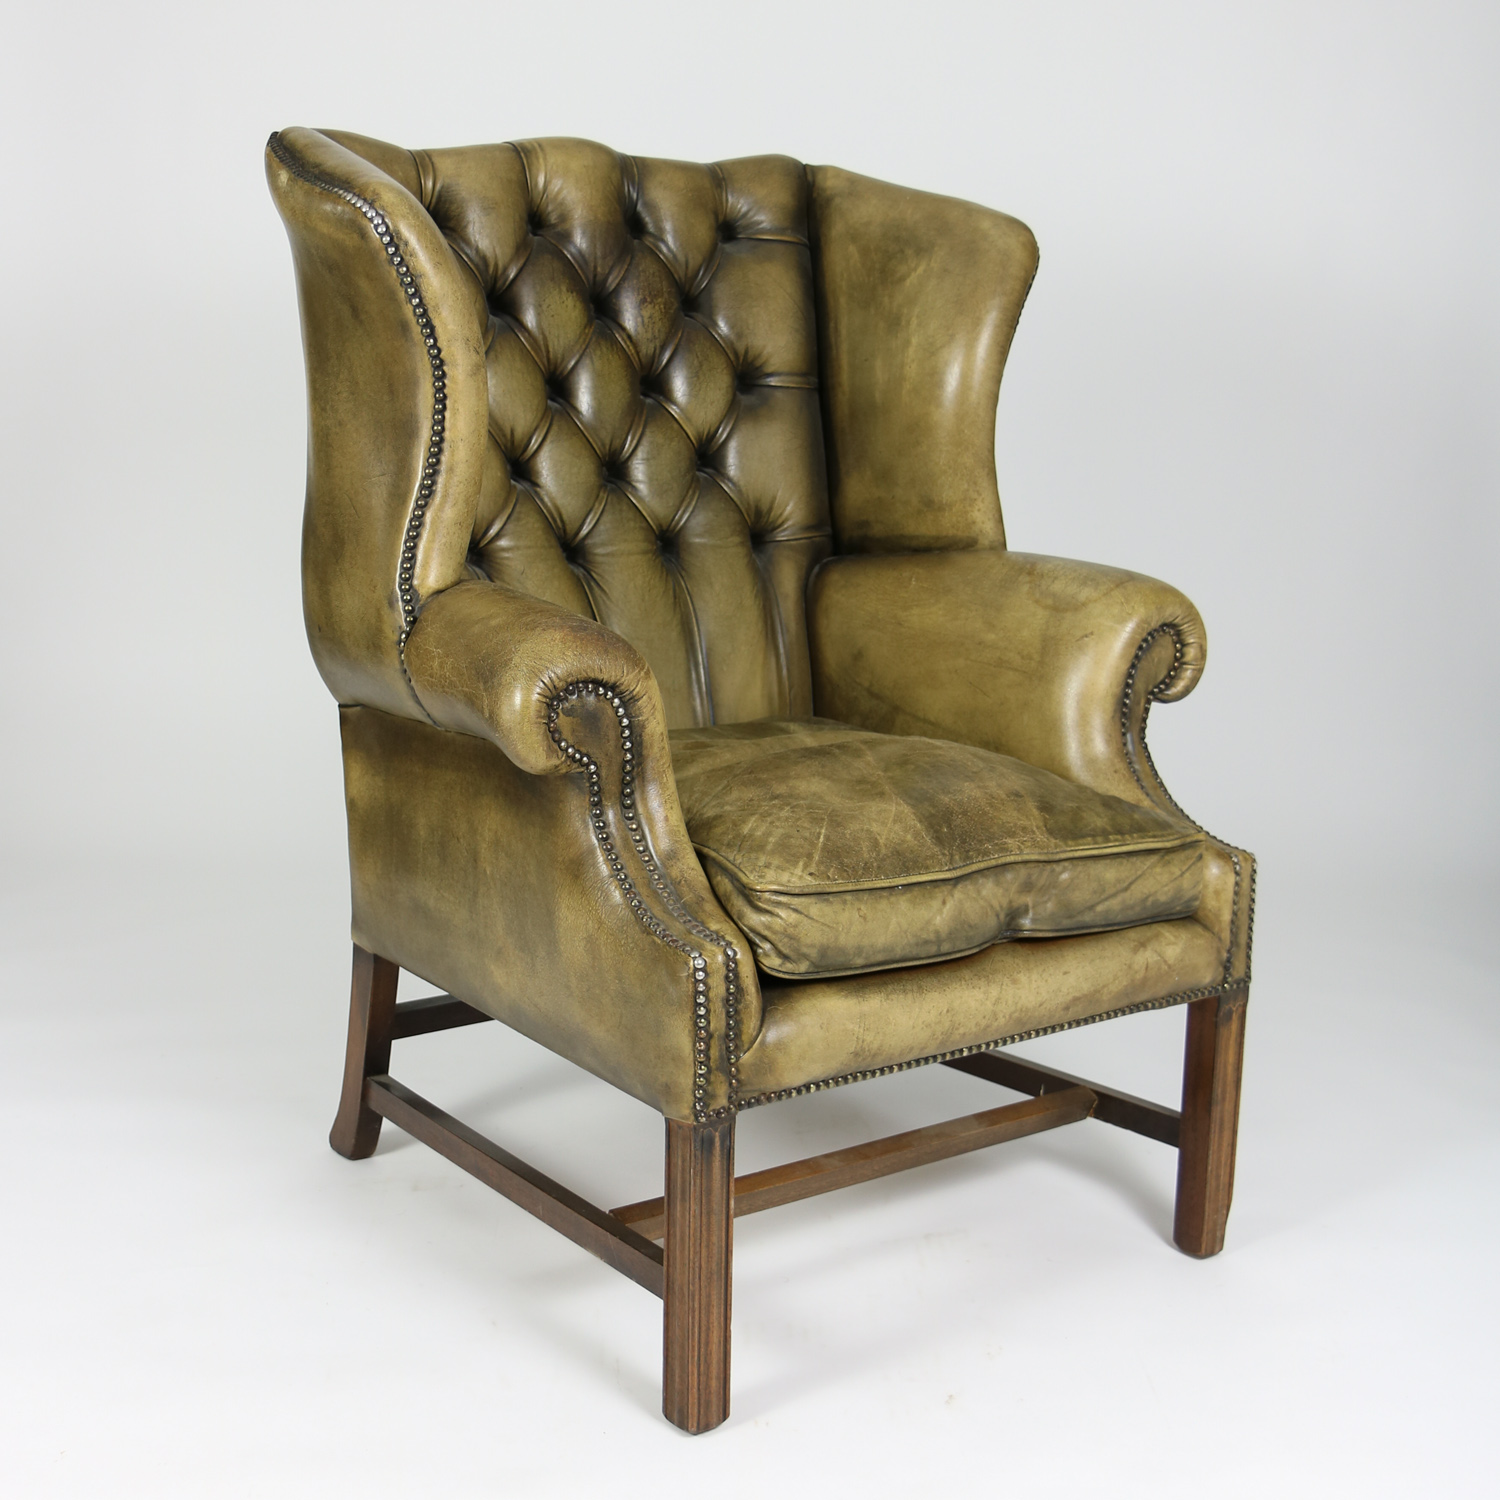 Tufted Green Leather Wingback Chair Ph 415 355 1690